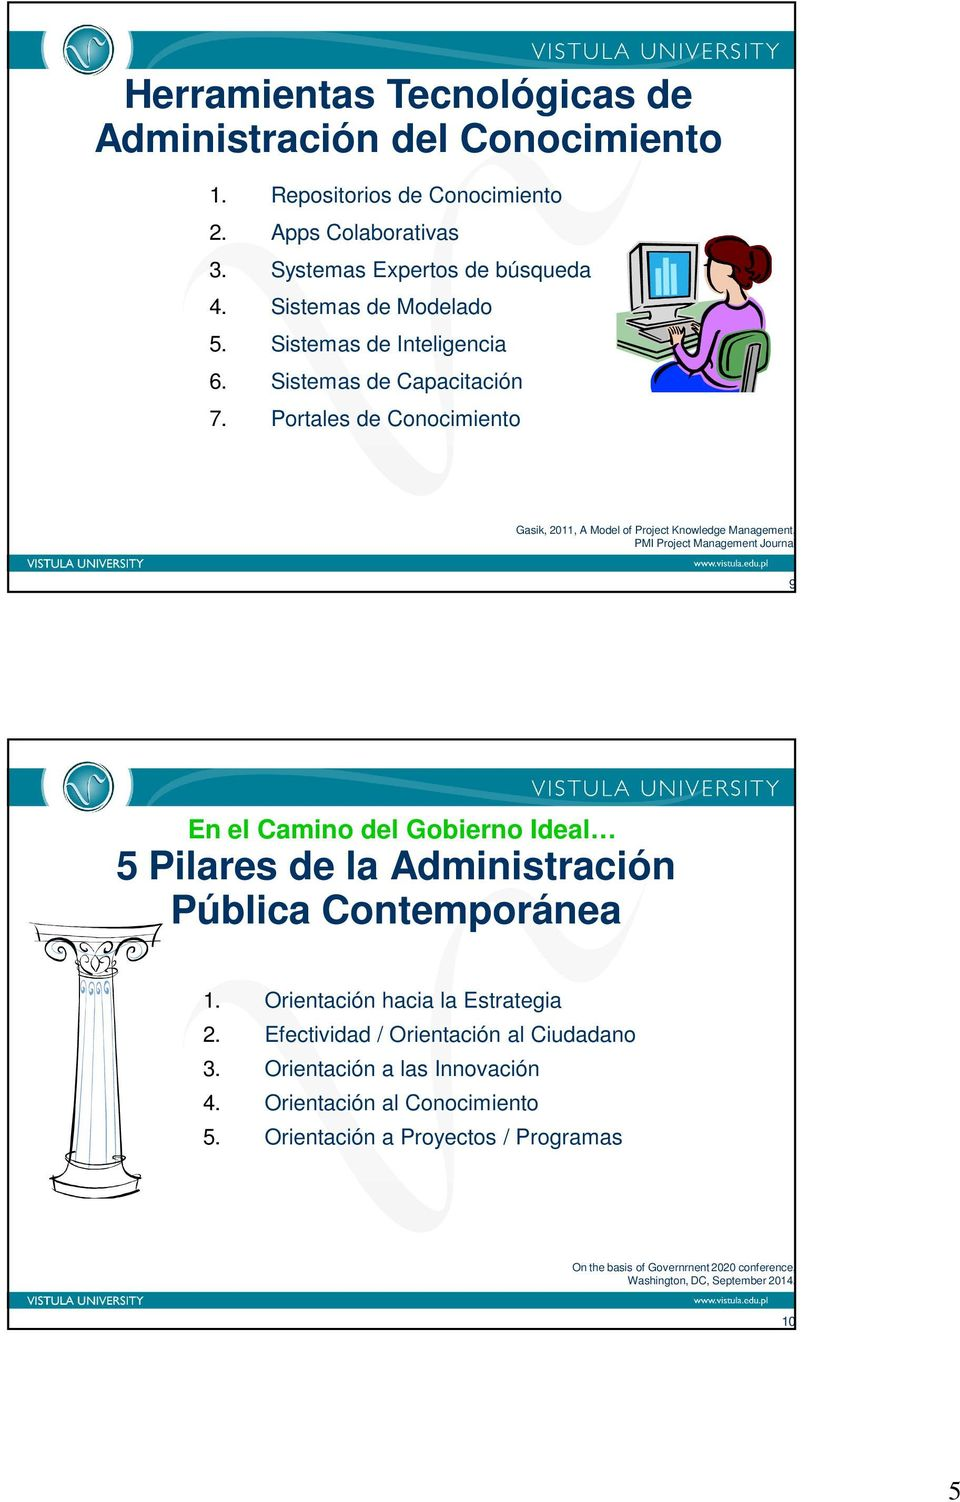 Portales de Conocimiento Gasik, 2011, A Model of Project Knowledge Management, PMI Project Management Journal 9 En el Camino del Gobierno Ideal 5 Pilares de la